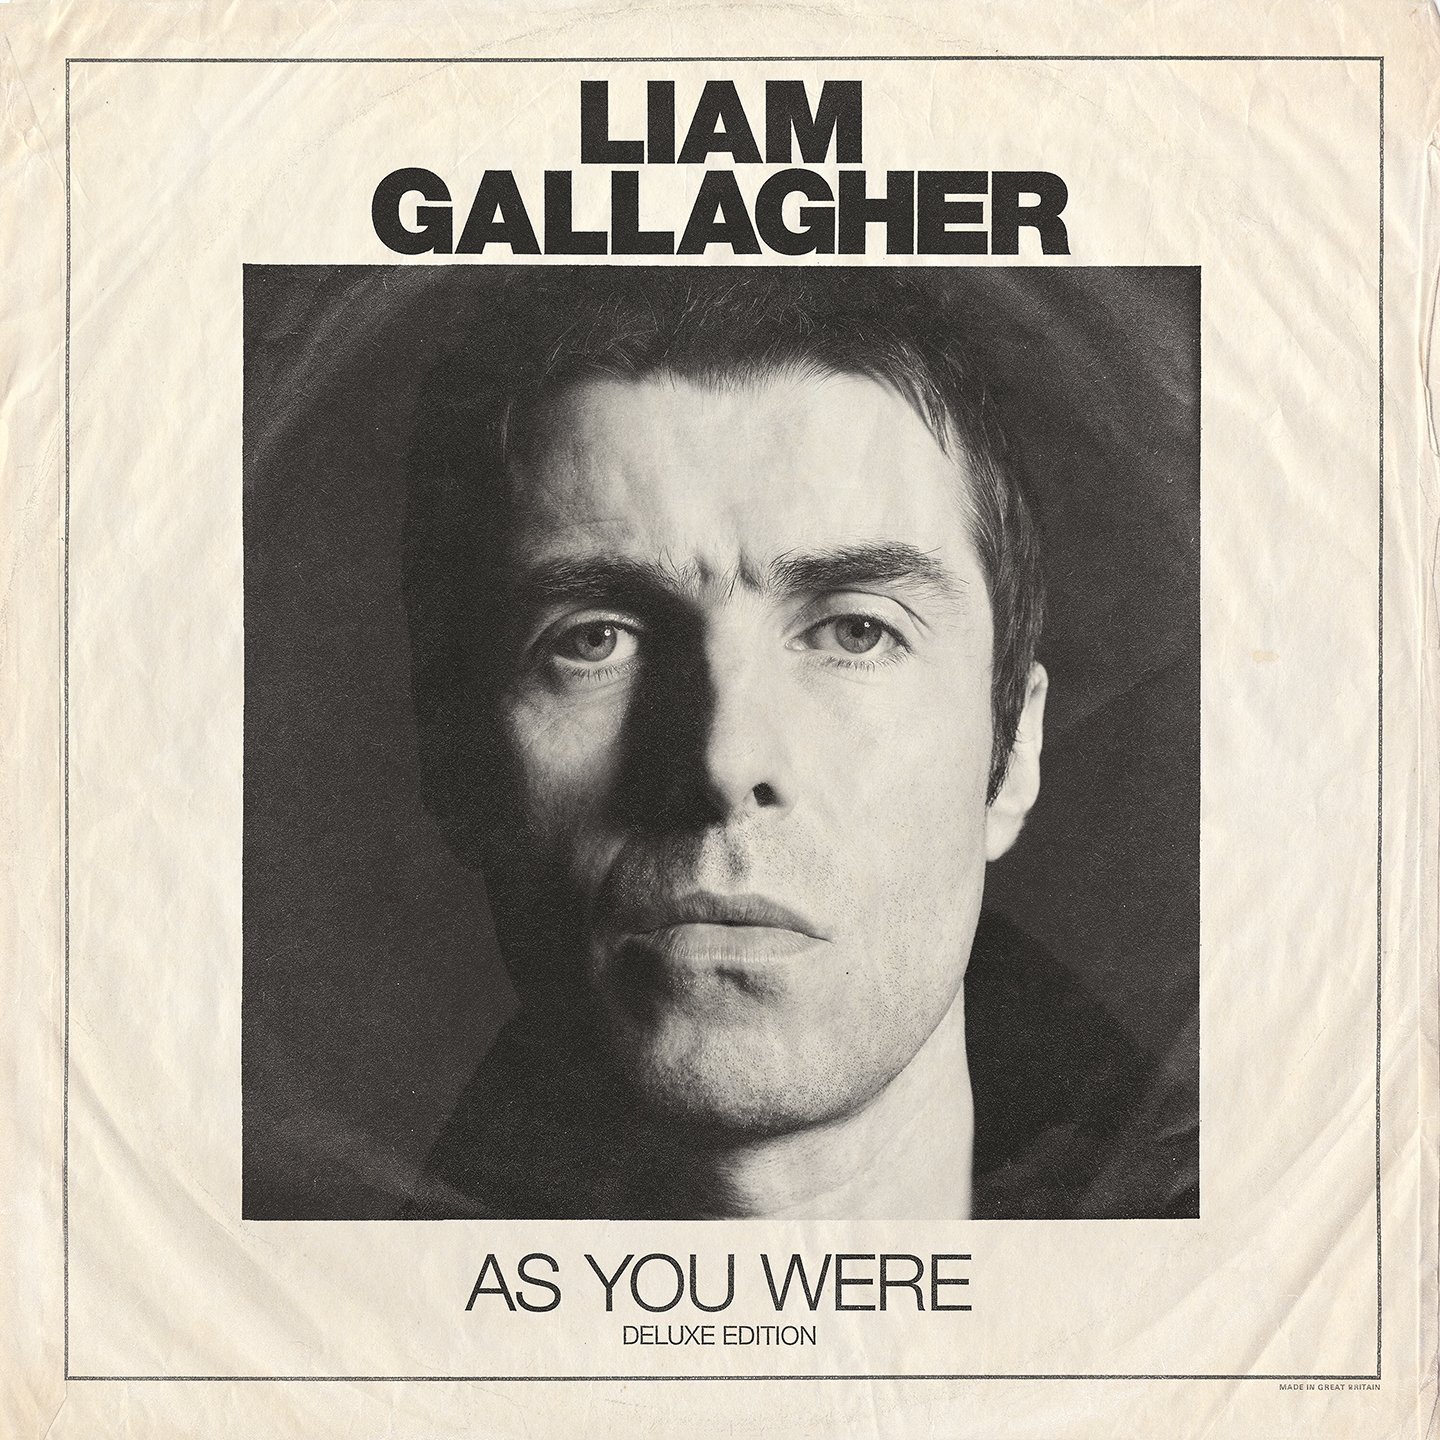 CD : Liam Gallagher - As You Were [Explicit Content] (Deluxe Edition)